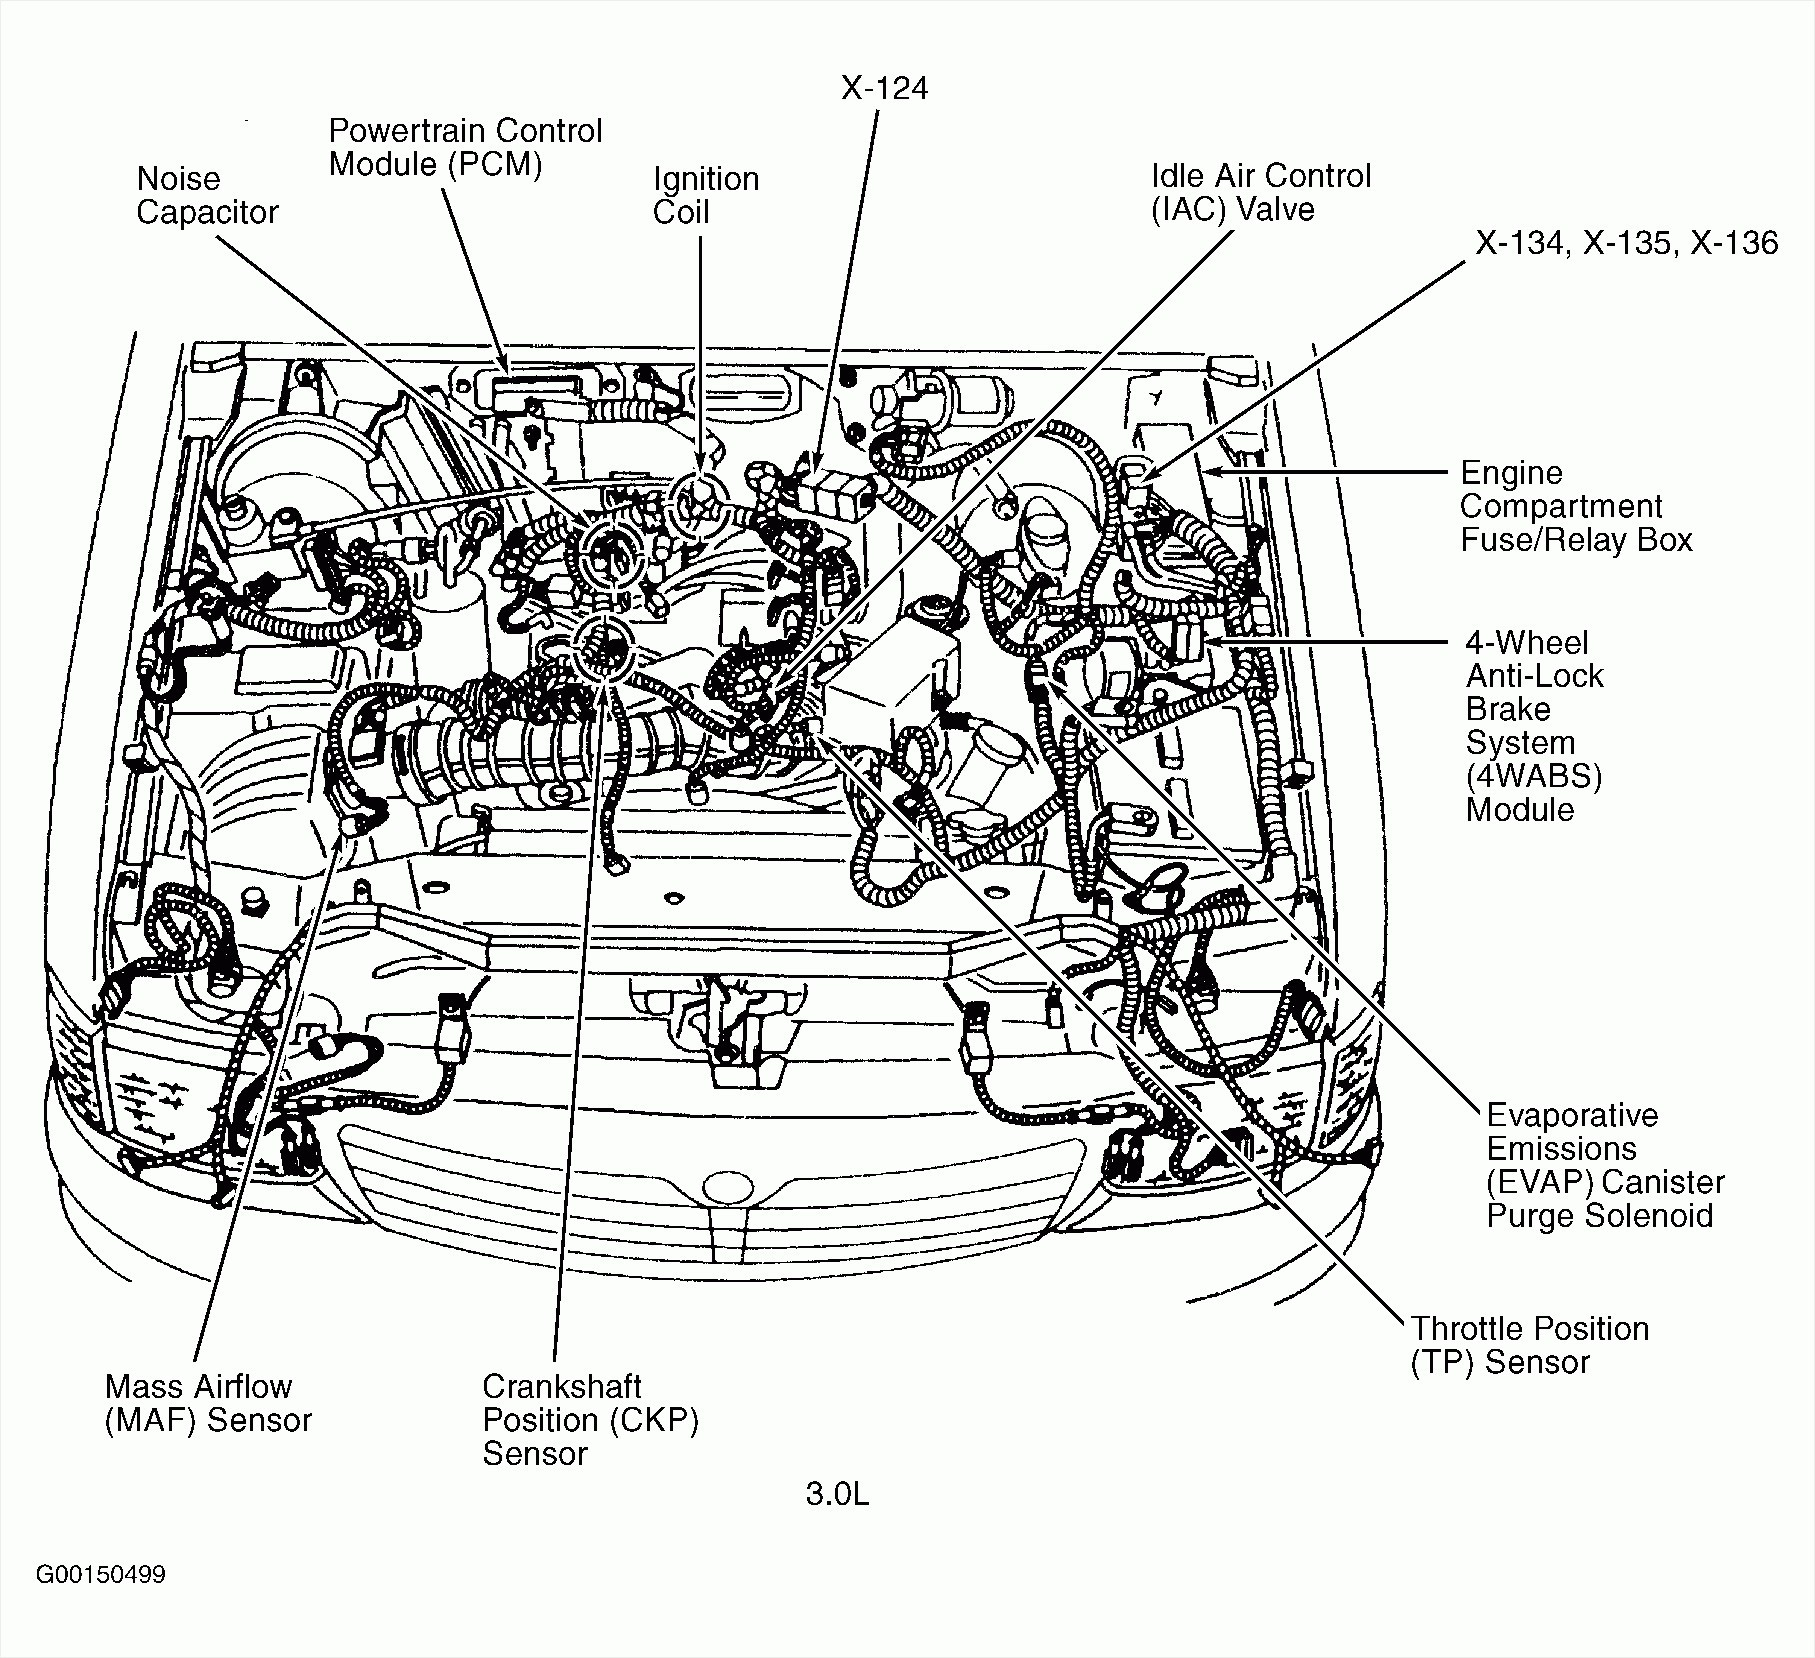 Gm 3.8 Engine Diagram - Data Wiring Diagrams